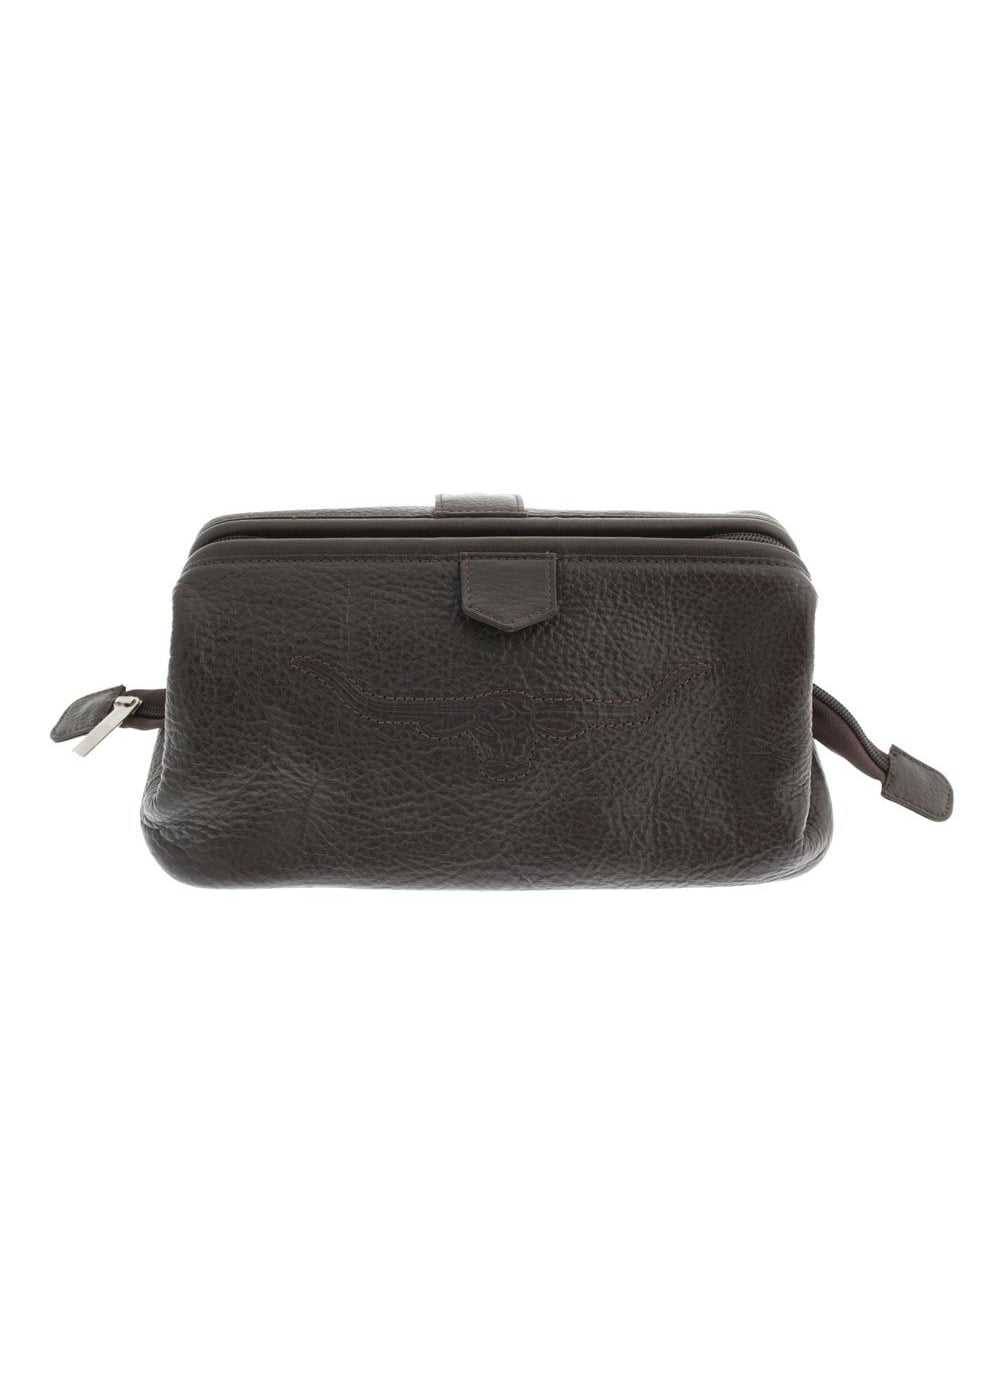 RM Williams Pebbled Leather Wash Bag Large Image